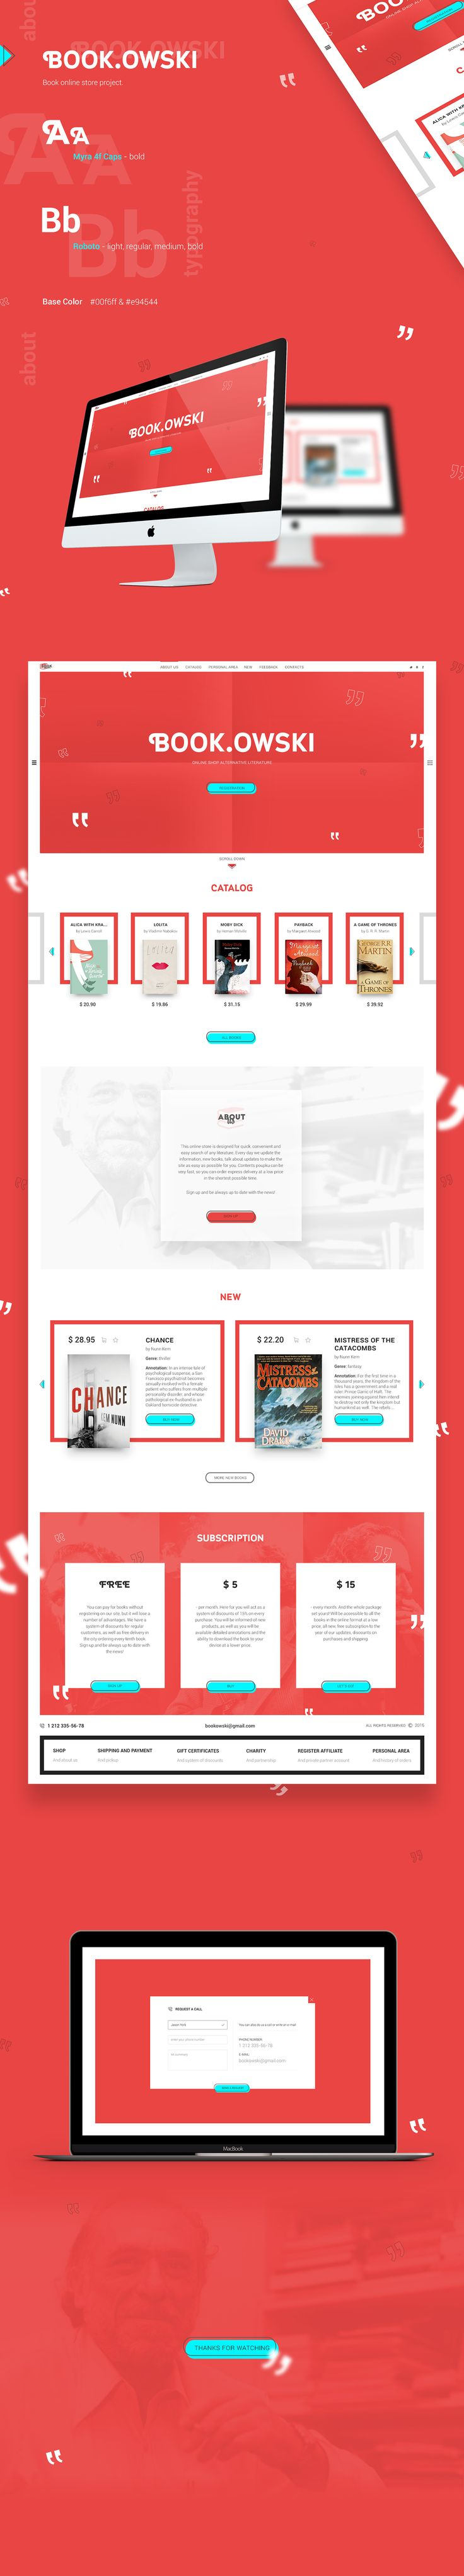 UI/UX Book Online Store Landing Page on Behance